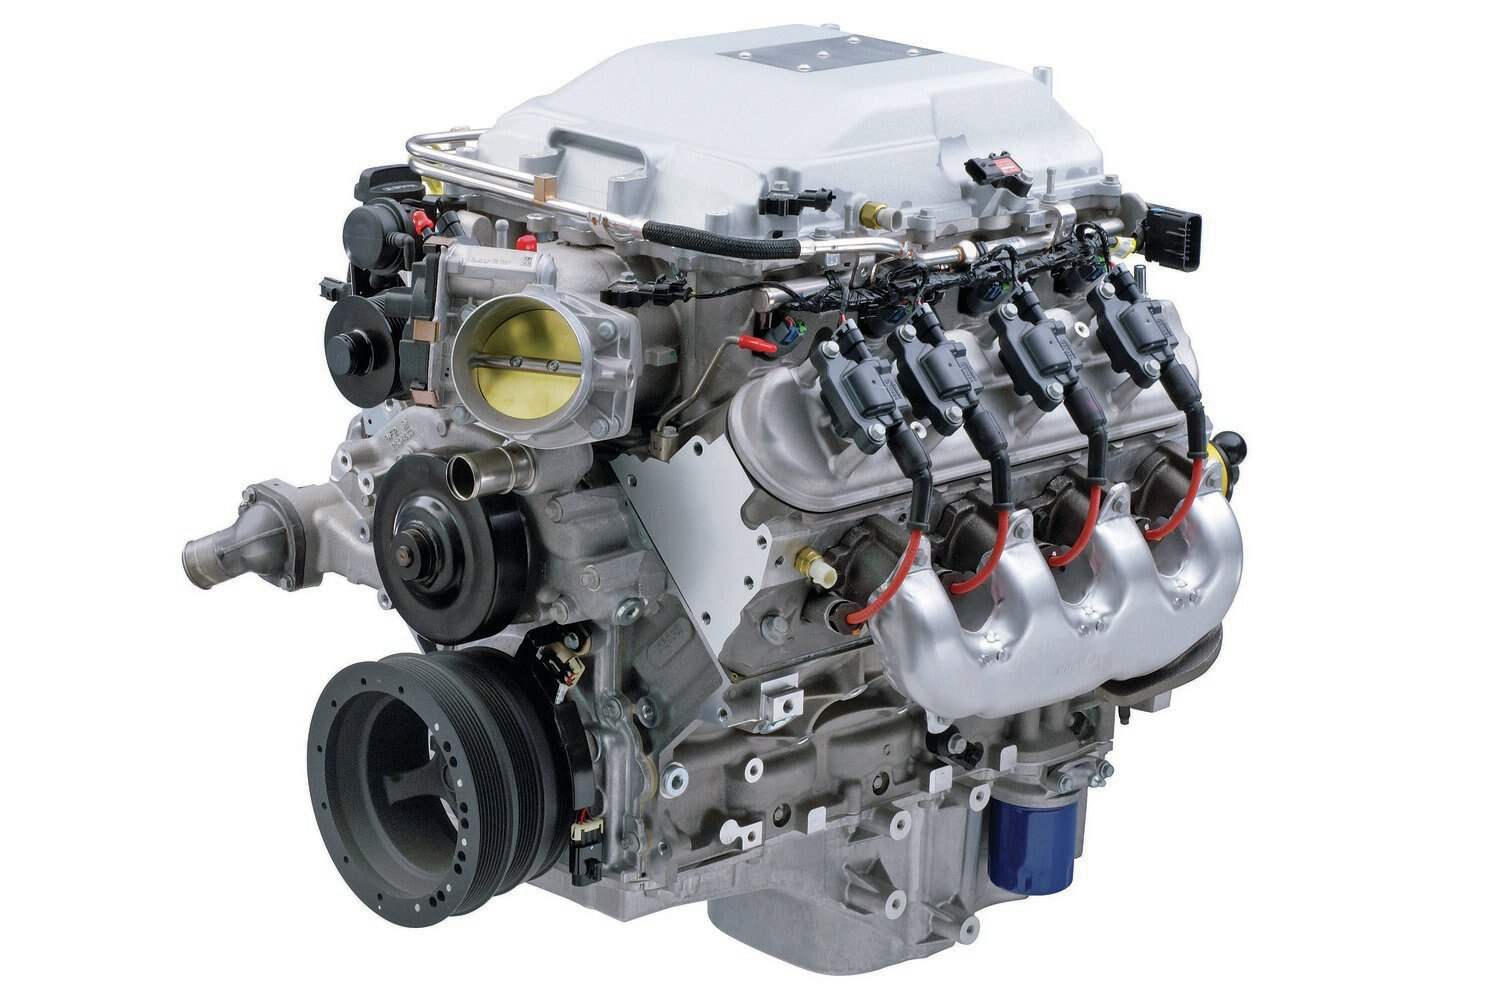 lowdriver-LS-engine-swap-e-rod-engine4